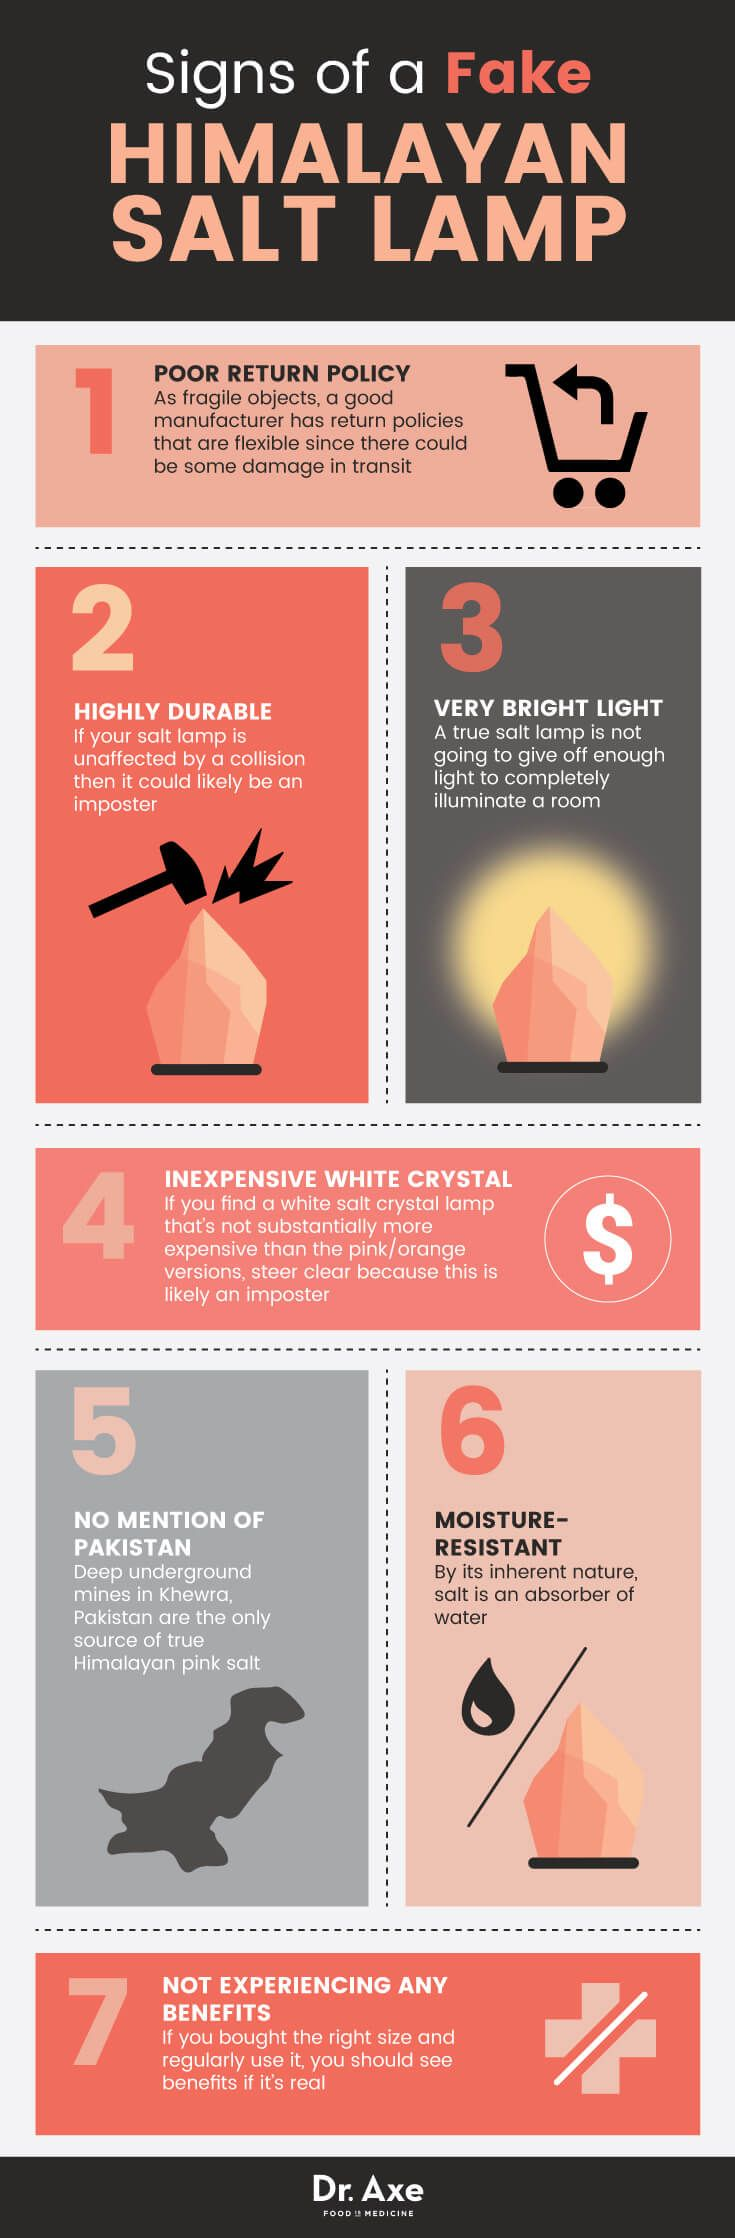 Himalayan Salt Lamp Warning Brilliant 7 Warning Signs Your Salt Lamp Is An Imposter  Himalayan Salt Review